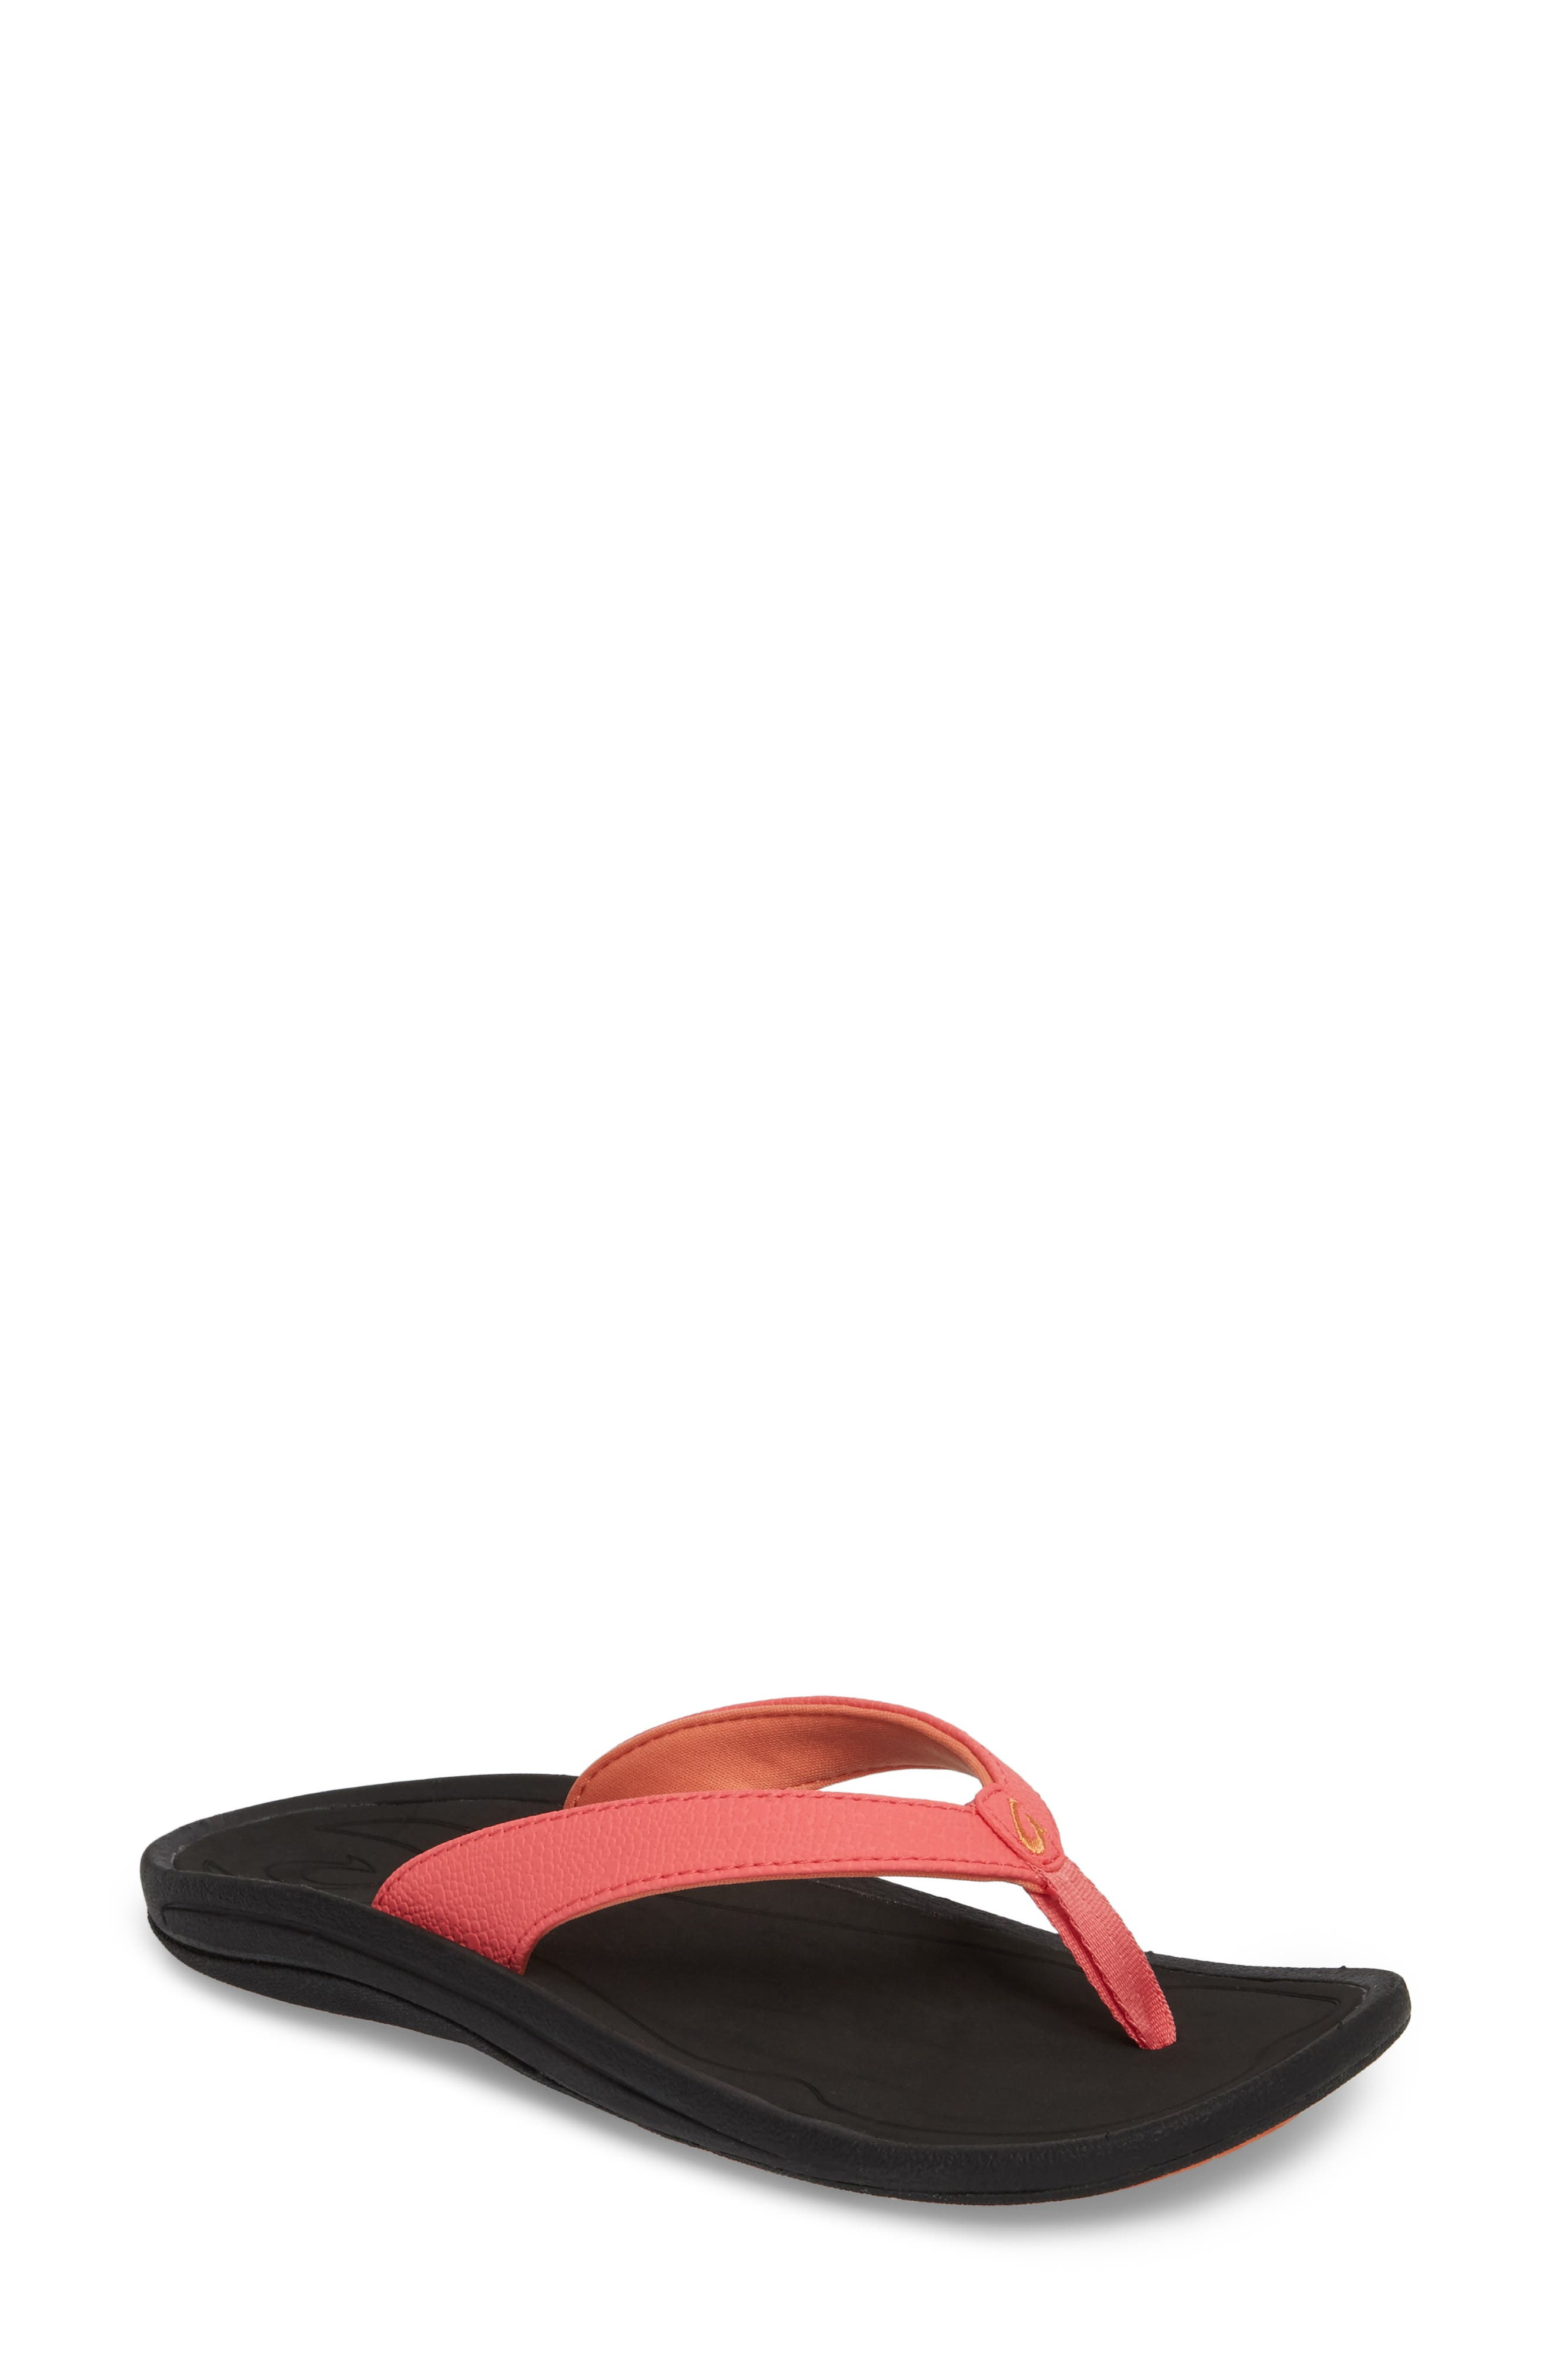 'Kulapa Kai' Thong Sandal,                         Main,                         color, Guava Jelly/ Black Faux